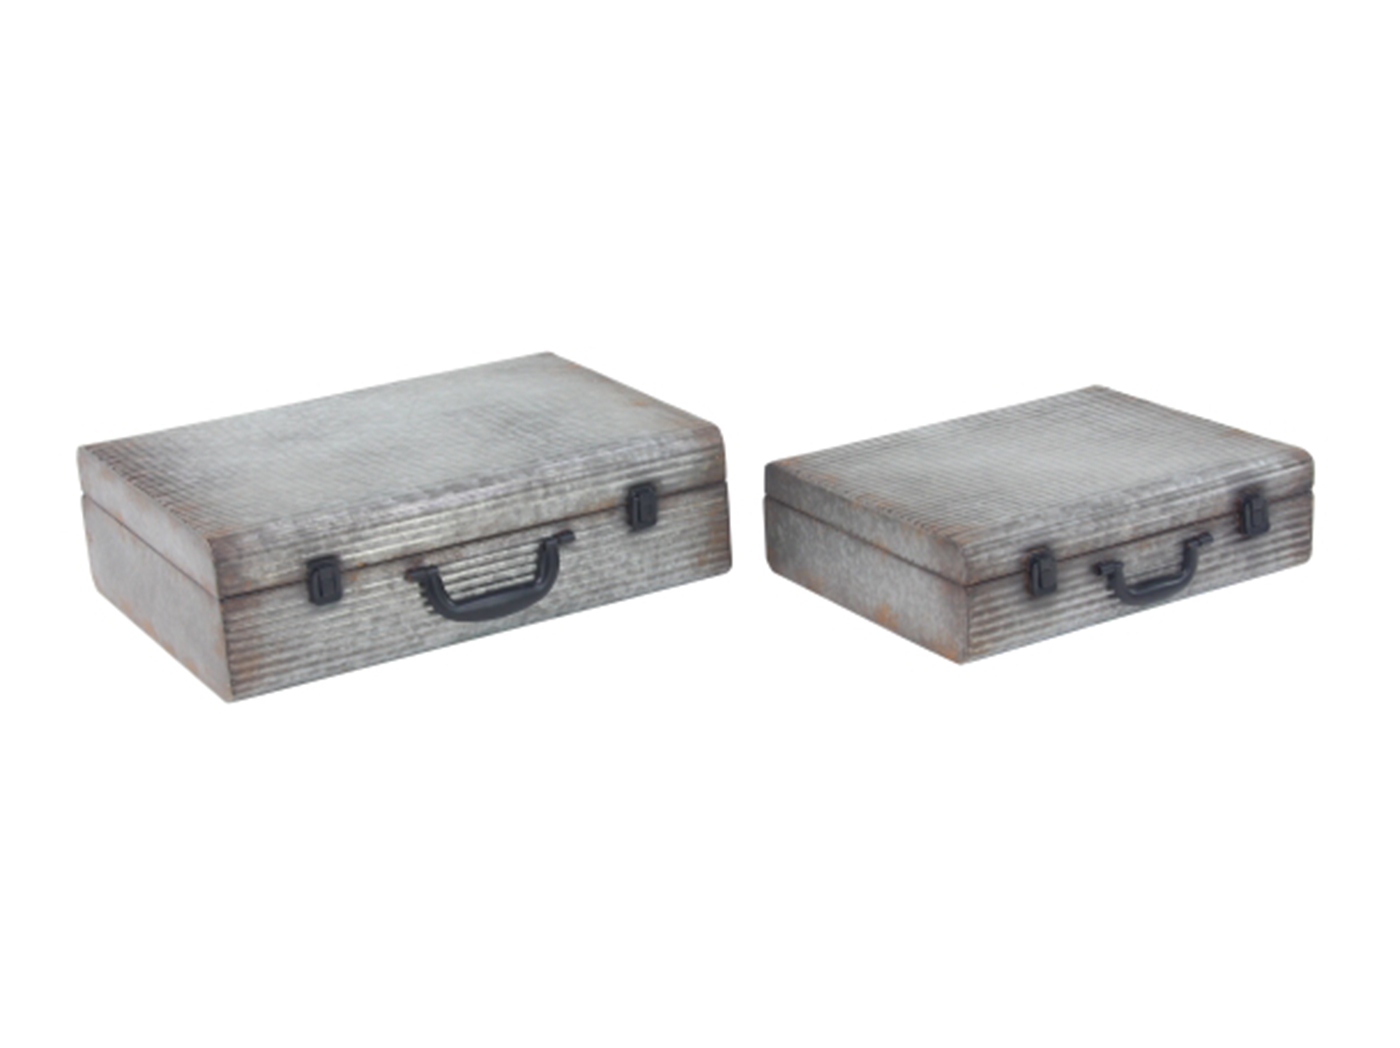 "Set of 2 Galvanized Metal Boxes 16/20""W"